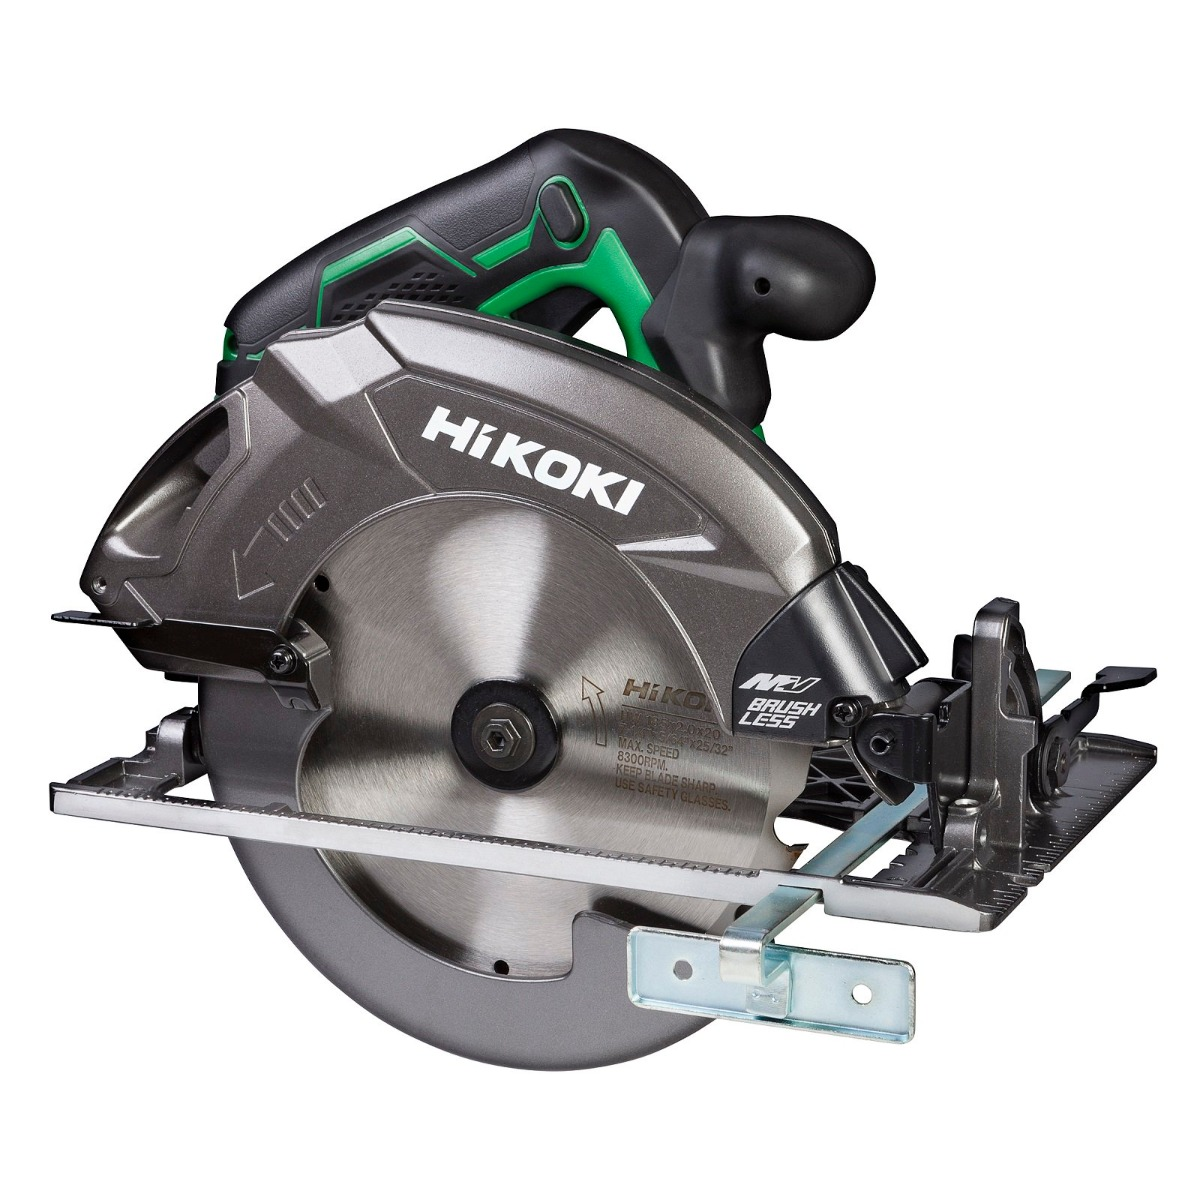 C3607DA 36V Multi Volt Circular Saw with Brushless Motor - Body Only